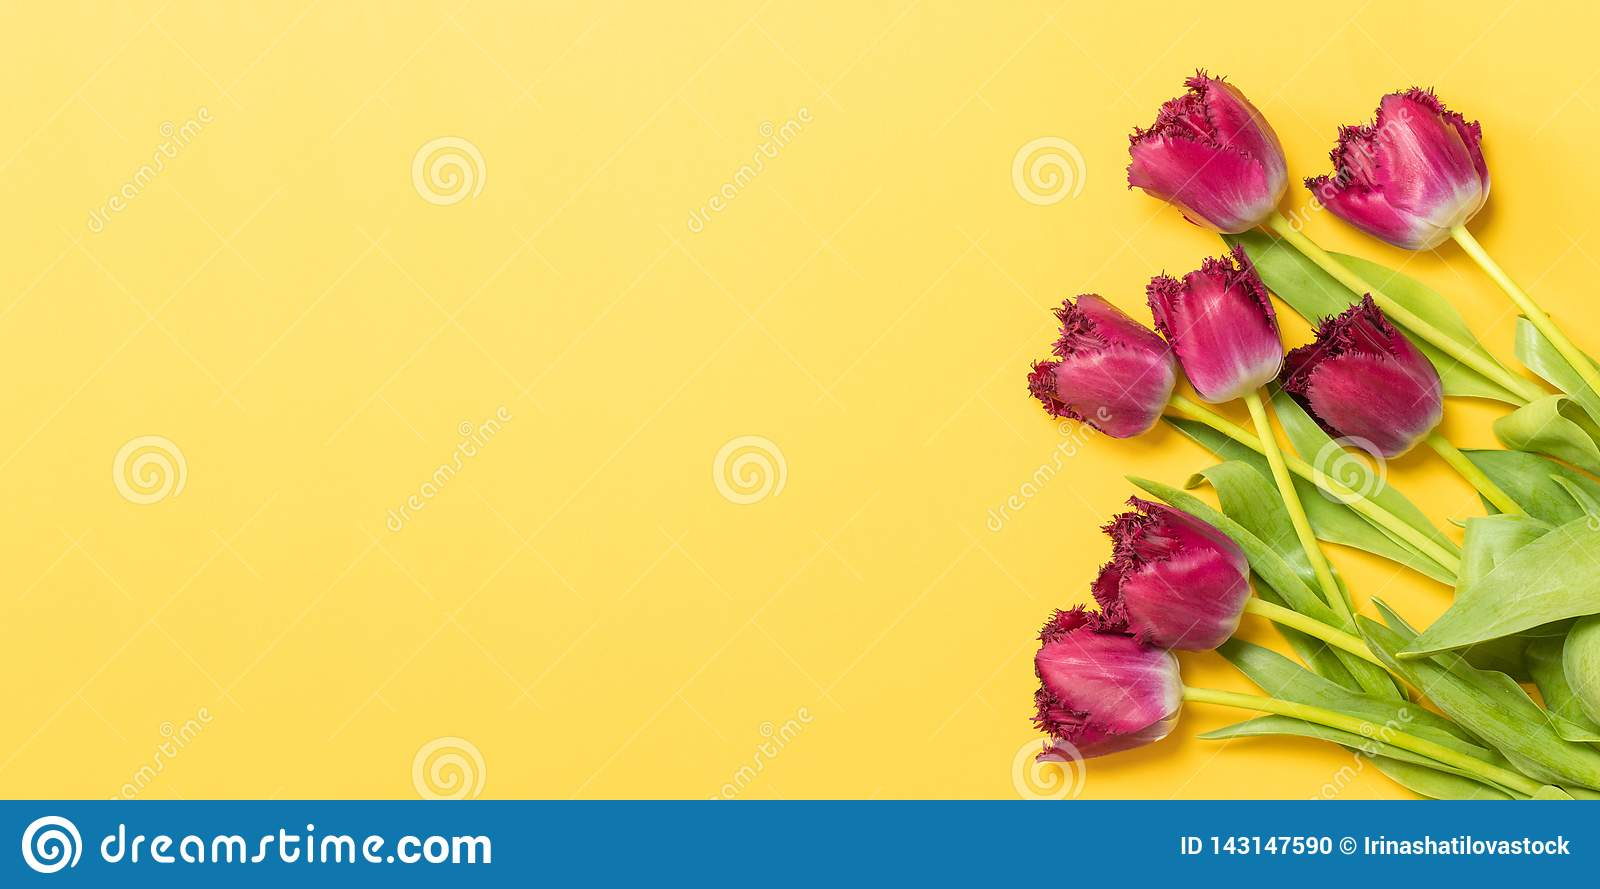 Spring concept. Fresh tulips on yellow background. Copy space